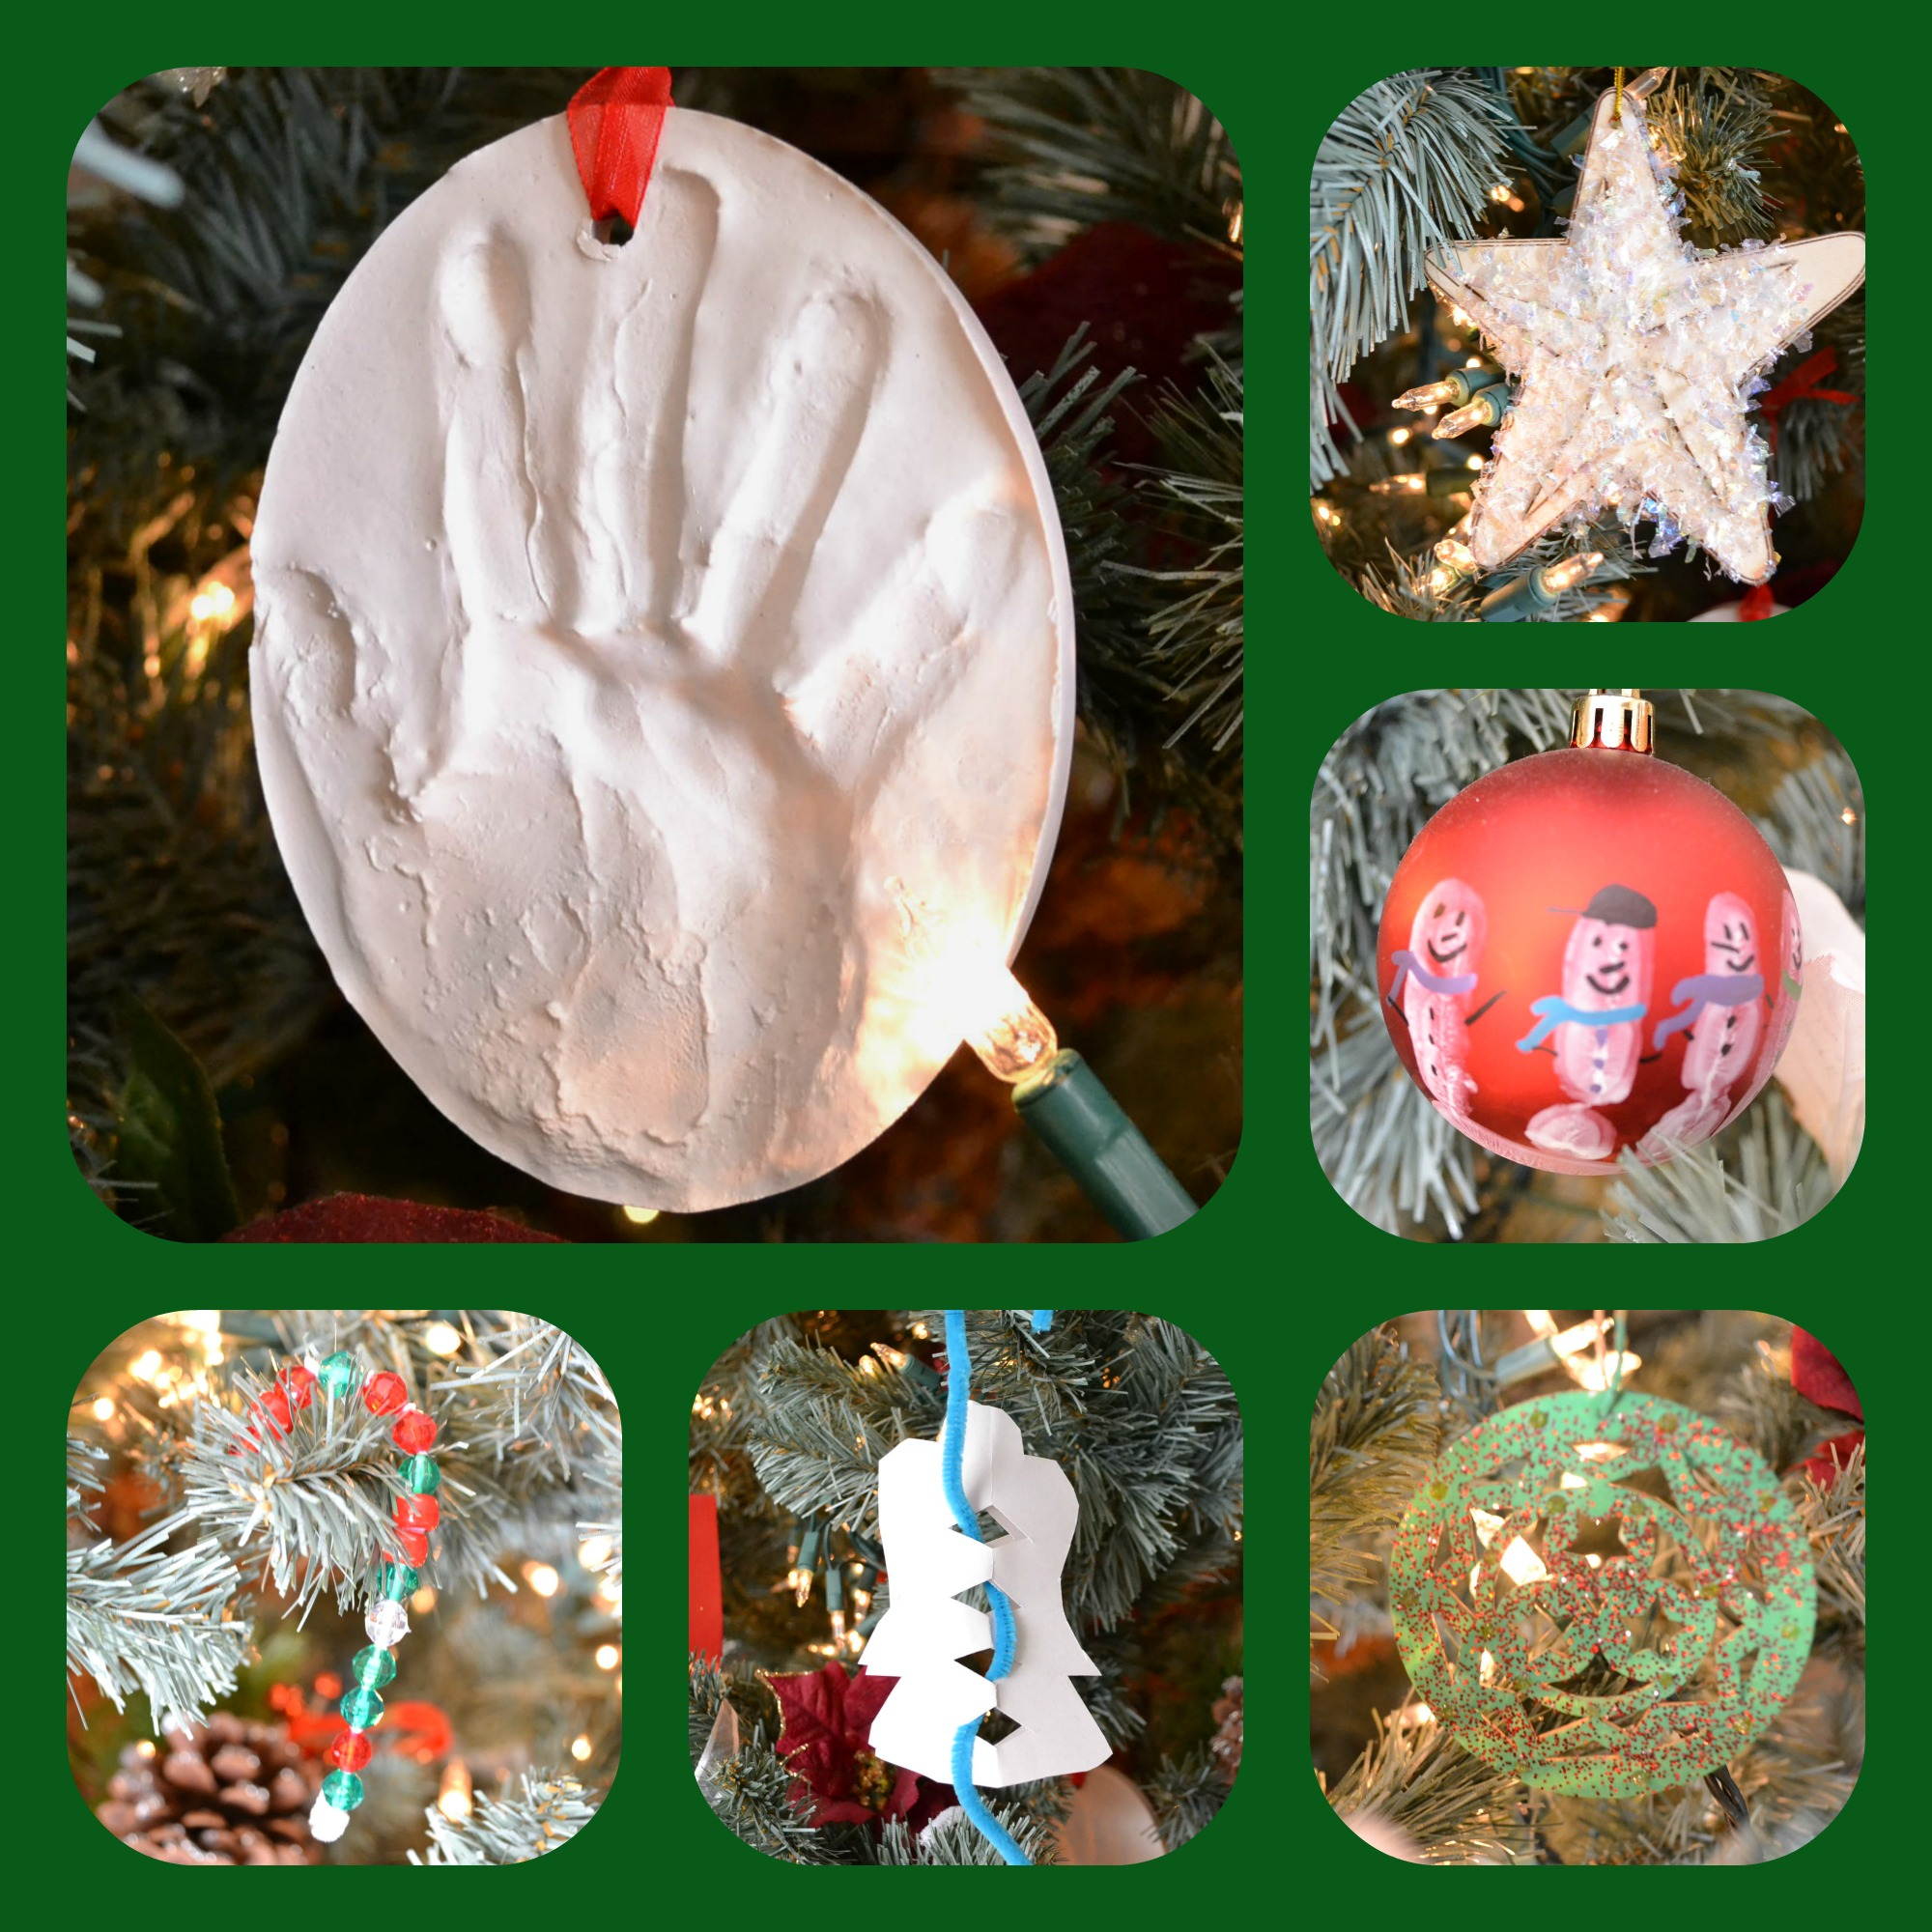 Christmas Ornaments Collage  Money Savvy Living